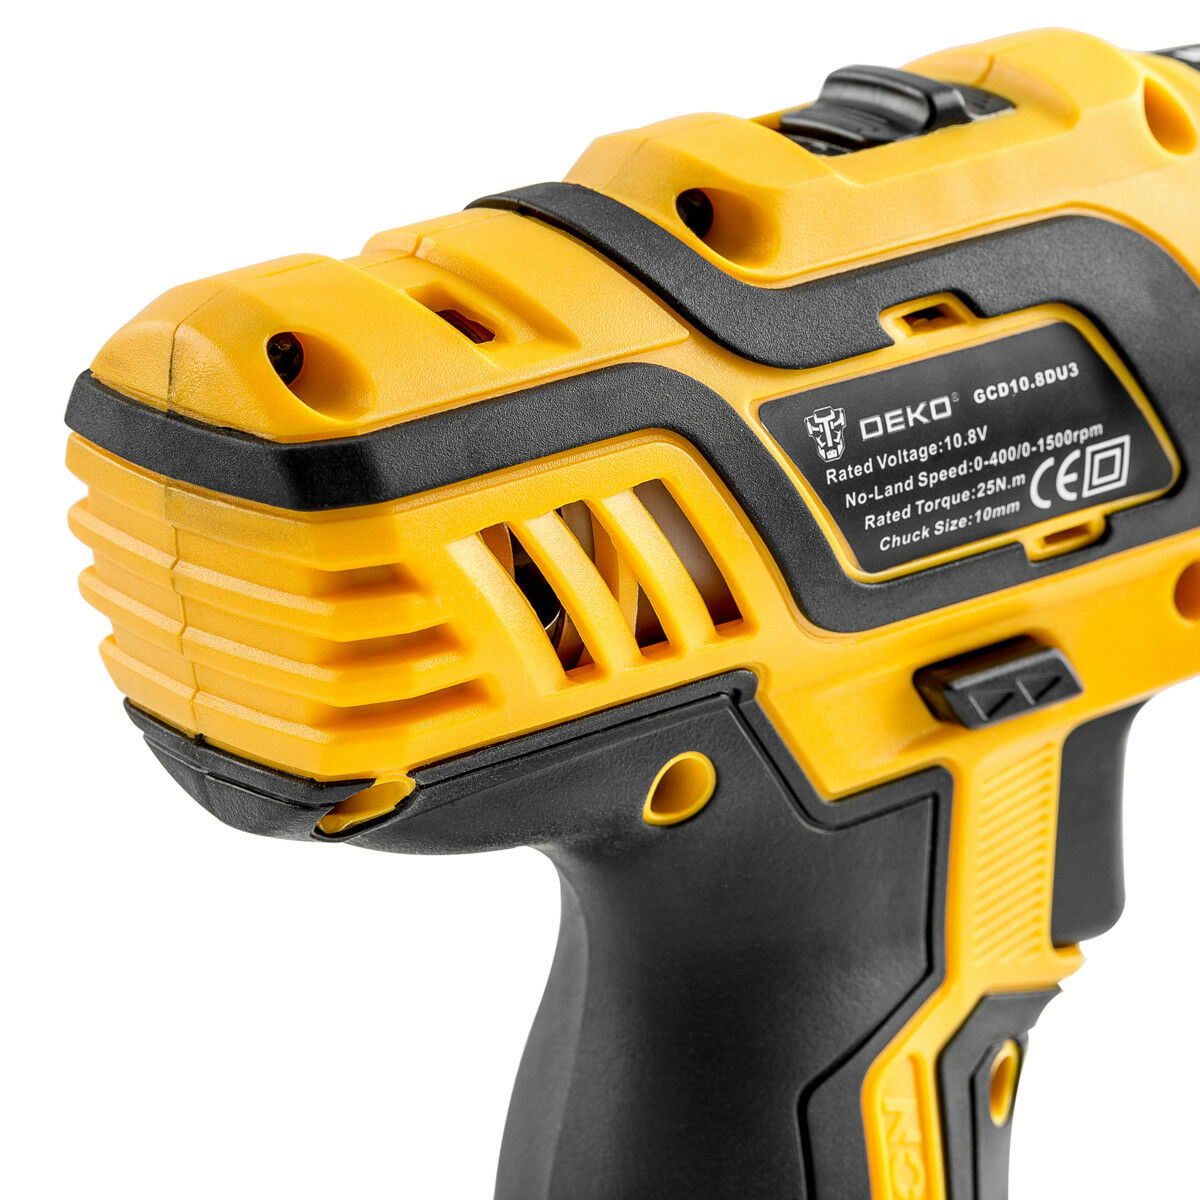 Deko Discount 24 Deko 3 8 Inch Dc Lithium Ion Battery Cordless Hammer Drill Electric Driver